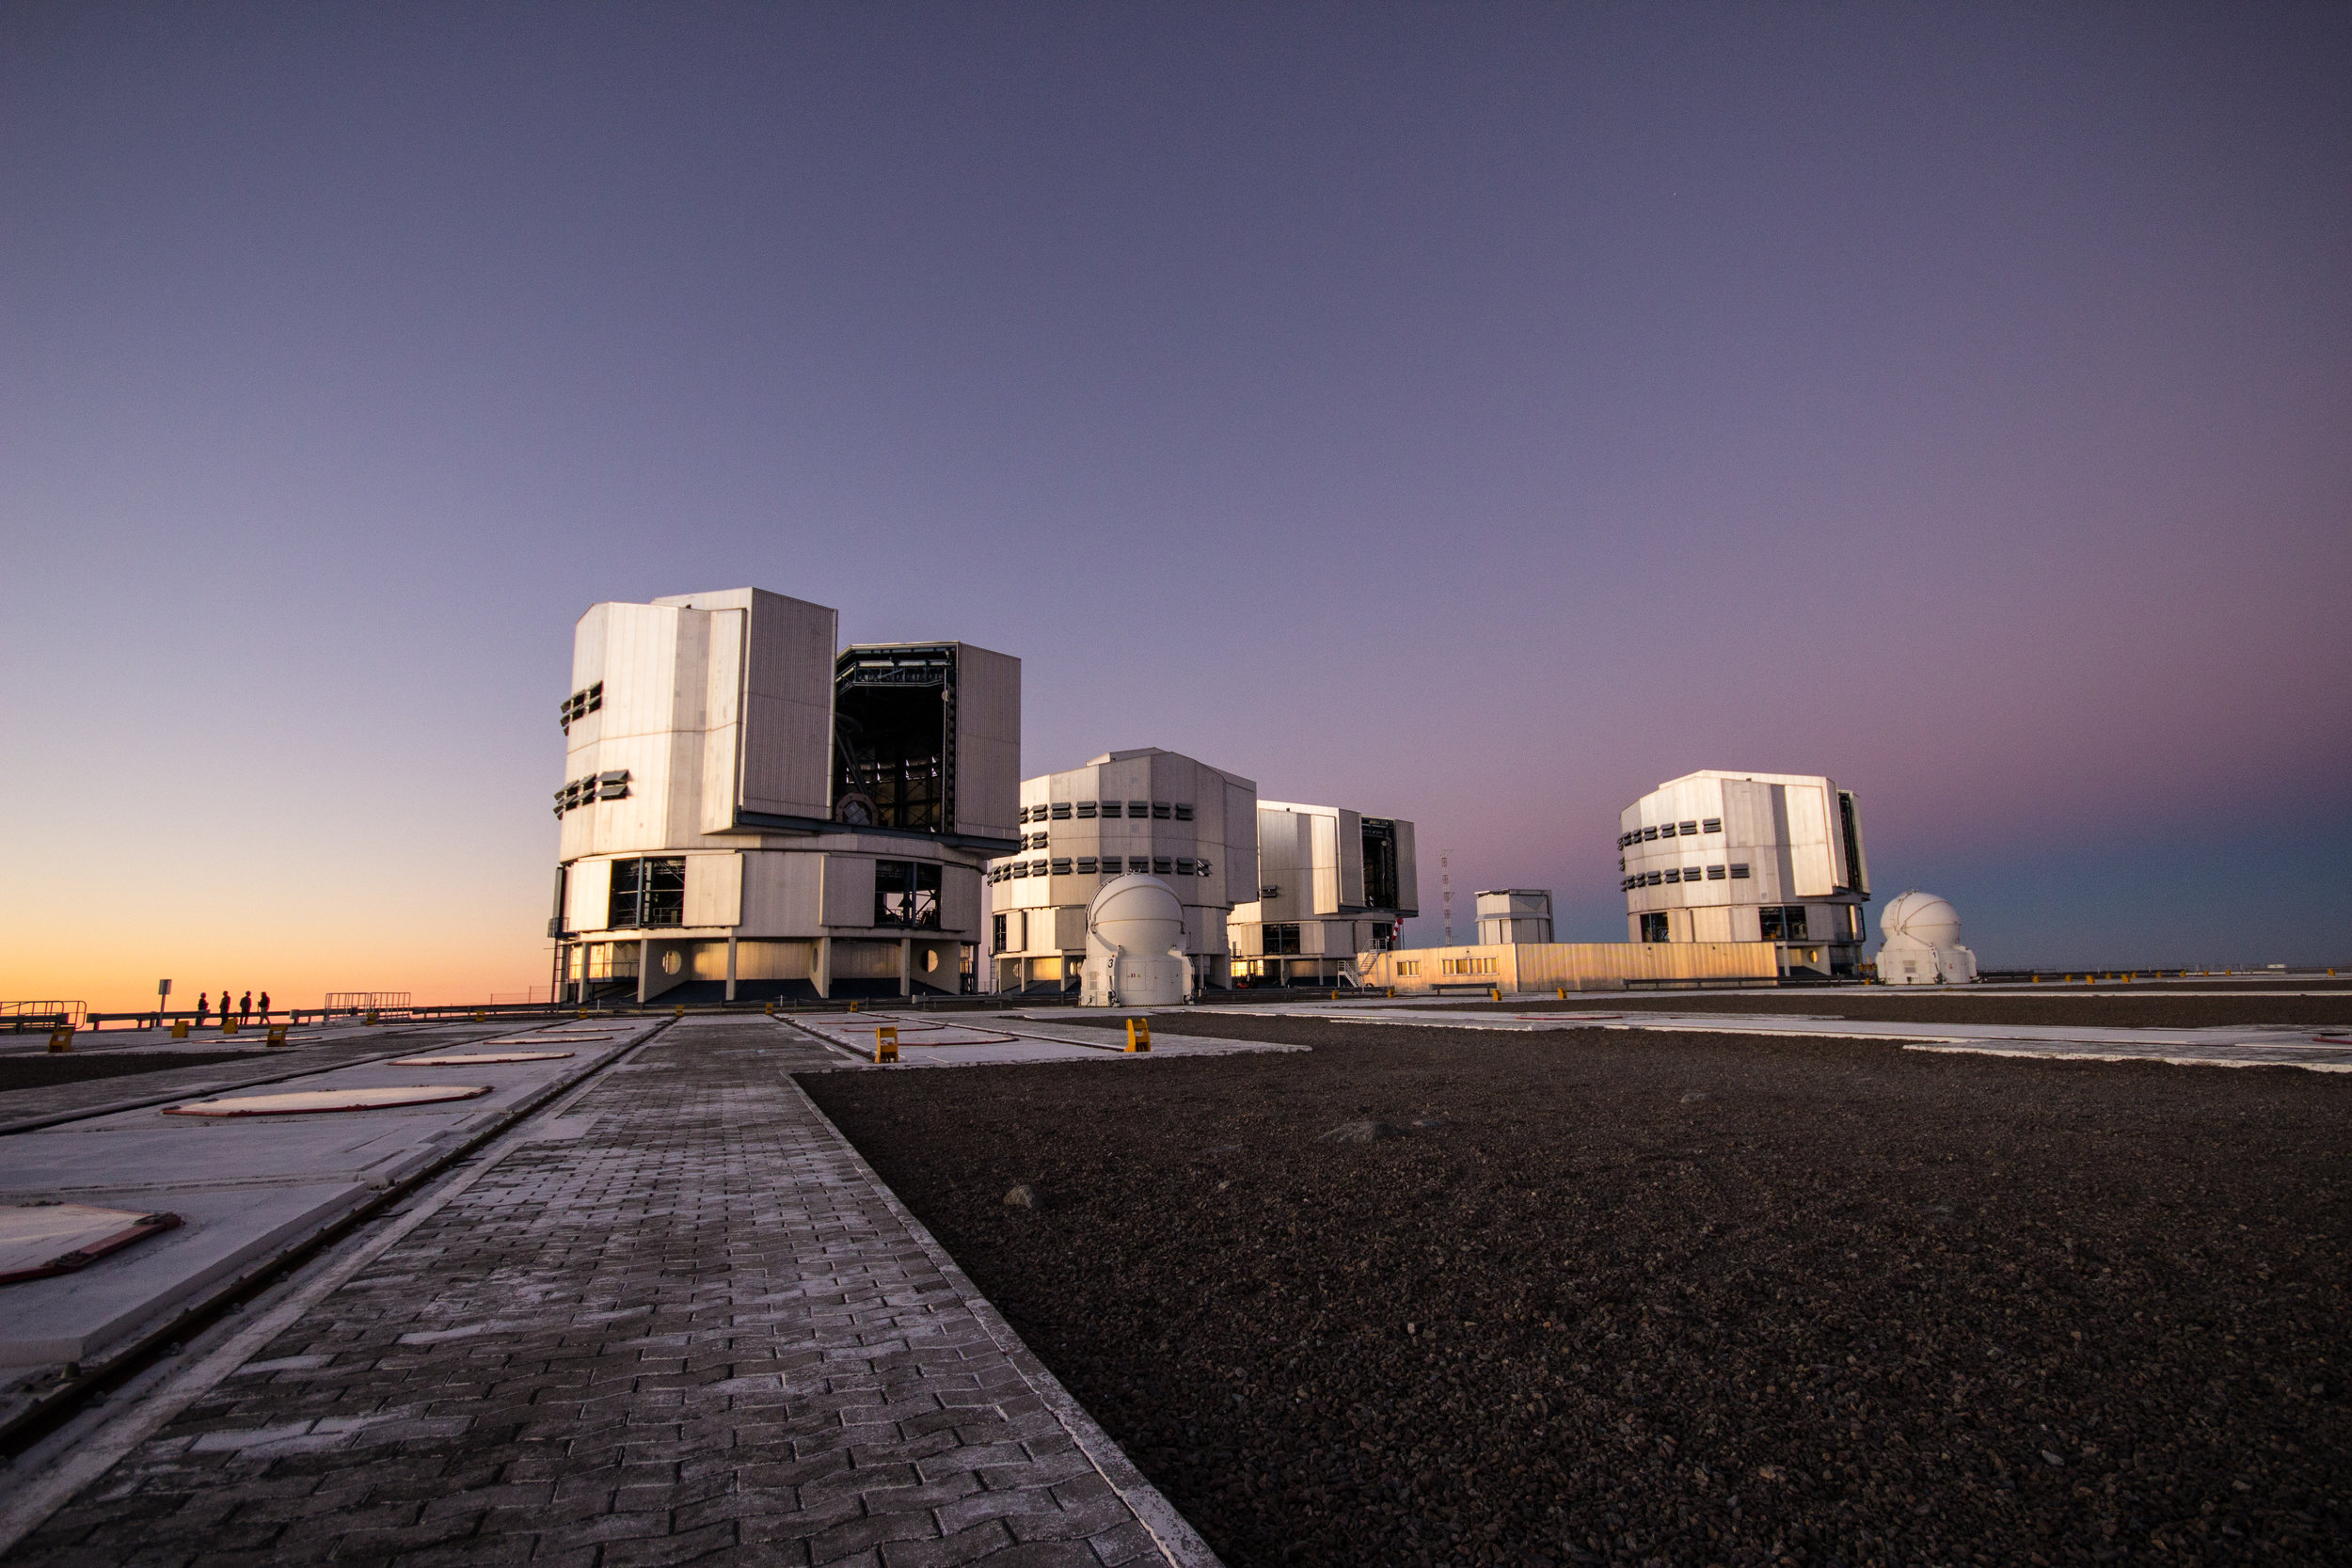 The  Very Large Telescope . The large structures house the four eight-meter Unit Telescopes. I controlled the second from the left, (UT2 /  Kueyen ). The smaller domes are  Auxiliary Telescopes , forming part of the  VLT Interferometer .  © Dr. Grant Tremblay